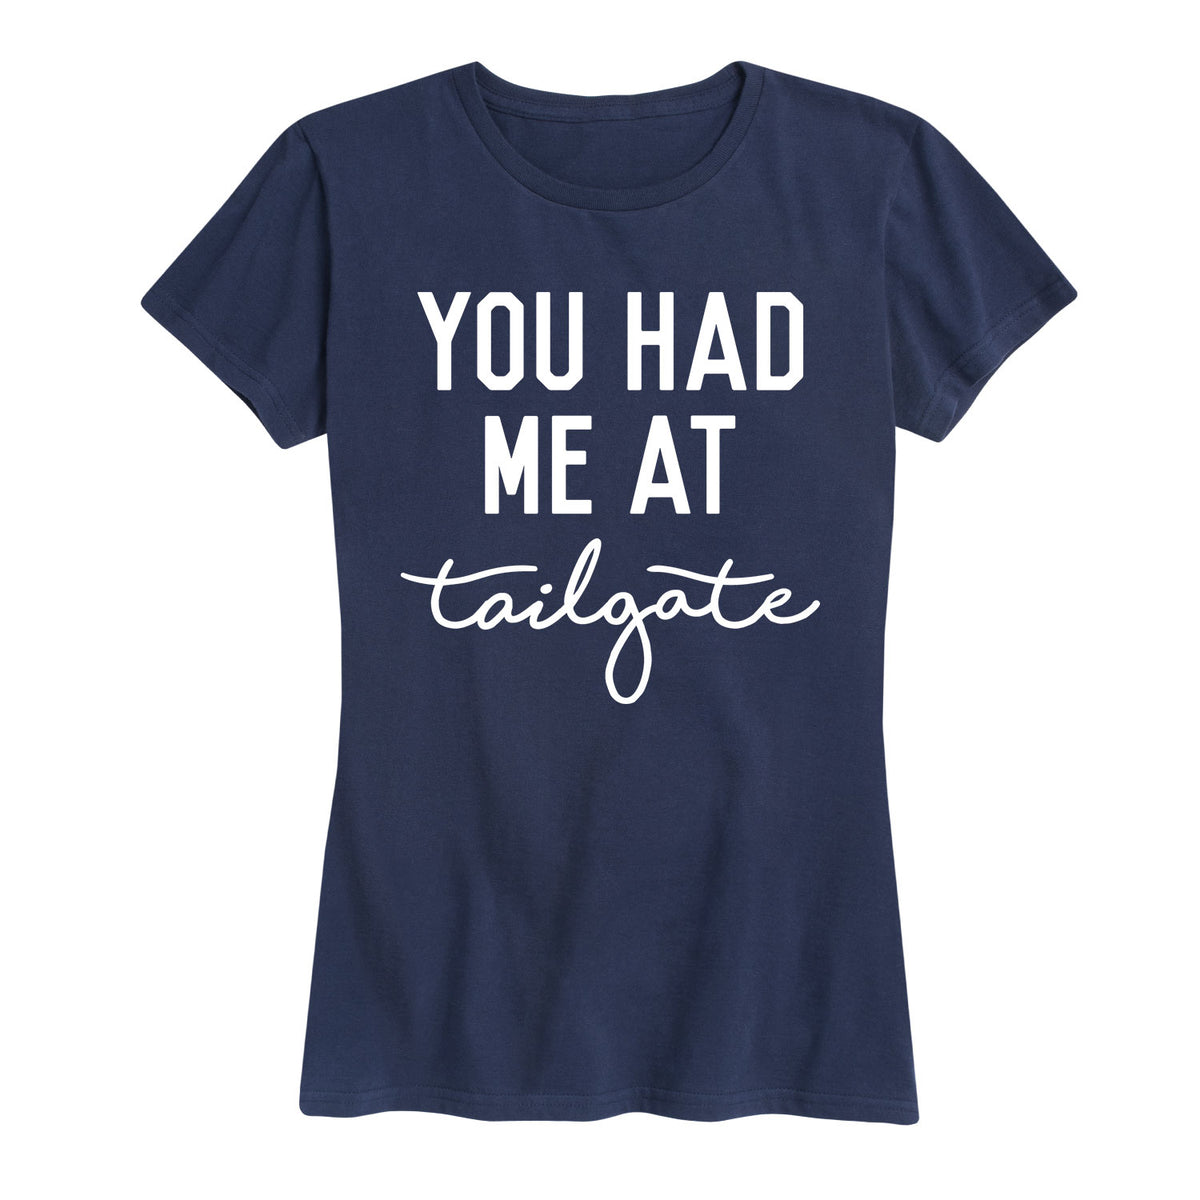 You Had Me At Tailgate - Women's Short Sleeve T-Shirt